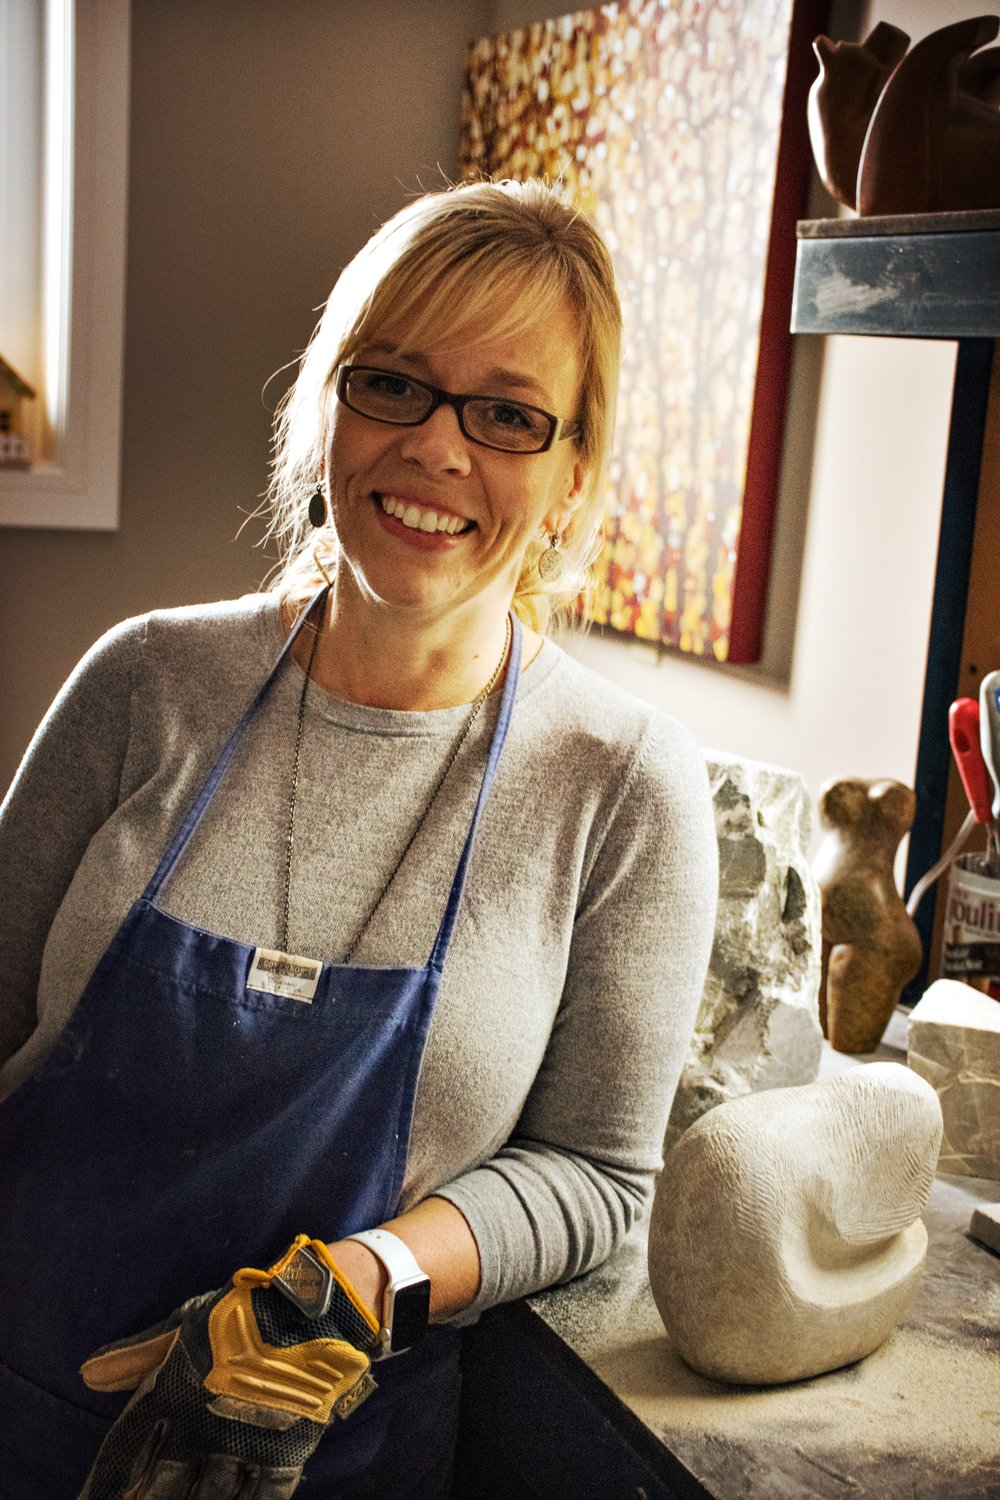 Lisa Douziech in her carving studio.